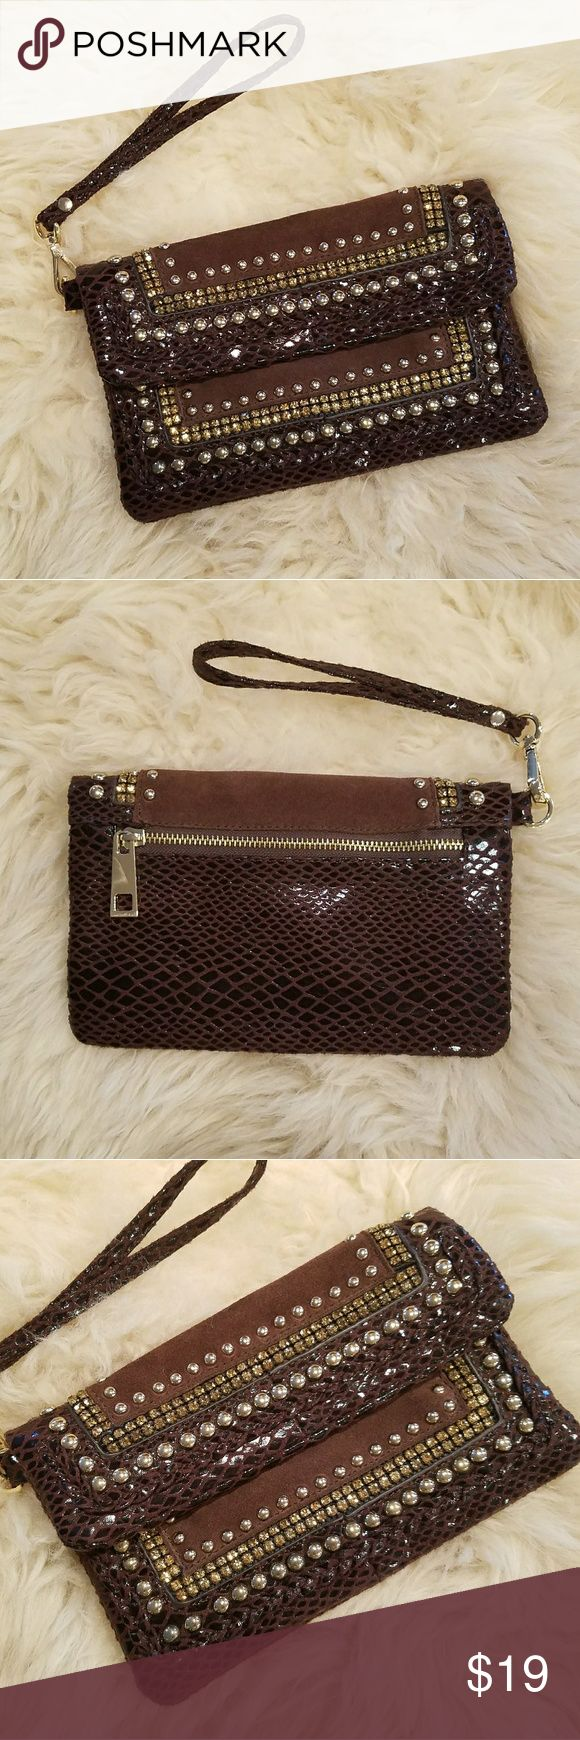 "Cache Studded Clutch Wristlet Brown & Gold Beautiful small brown faux snakeskin and suede clutch with gold hardware, stud accents and rhinestones. Hidden magnetic closure. 4 card slots on inside zipped compartment. Wrist Strap is removable. Hardly used. Excellent condition.  Offers welcome 💕  Measurements (approx): 8.75"" wide, 6""high. Cache Bags Clutches & Wristlets"